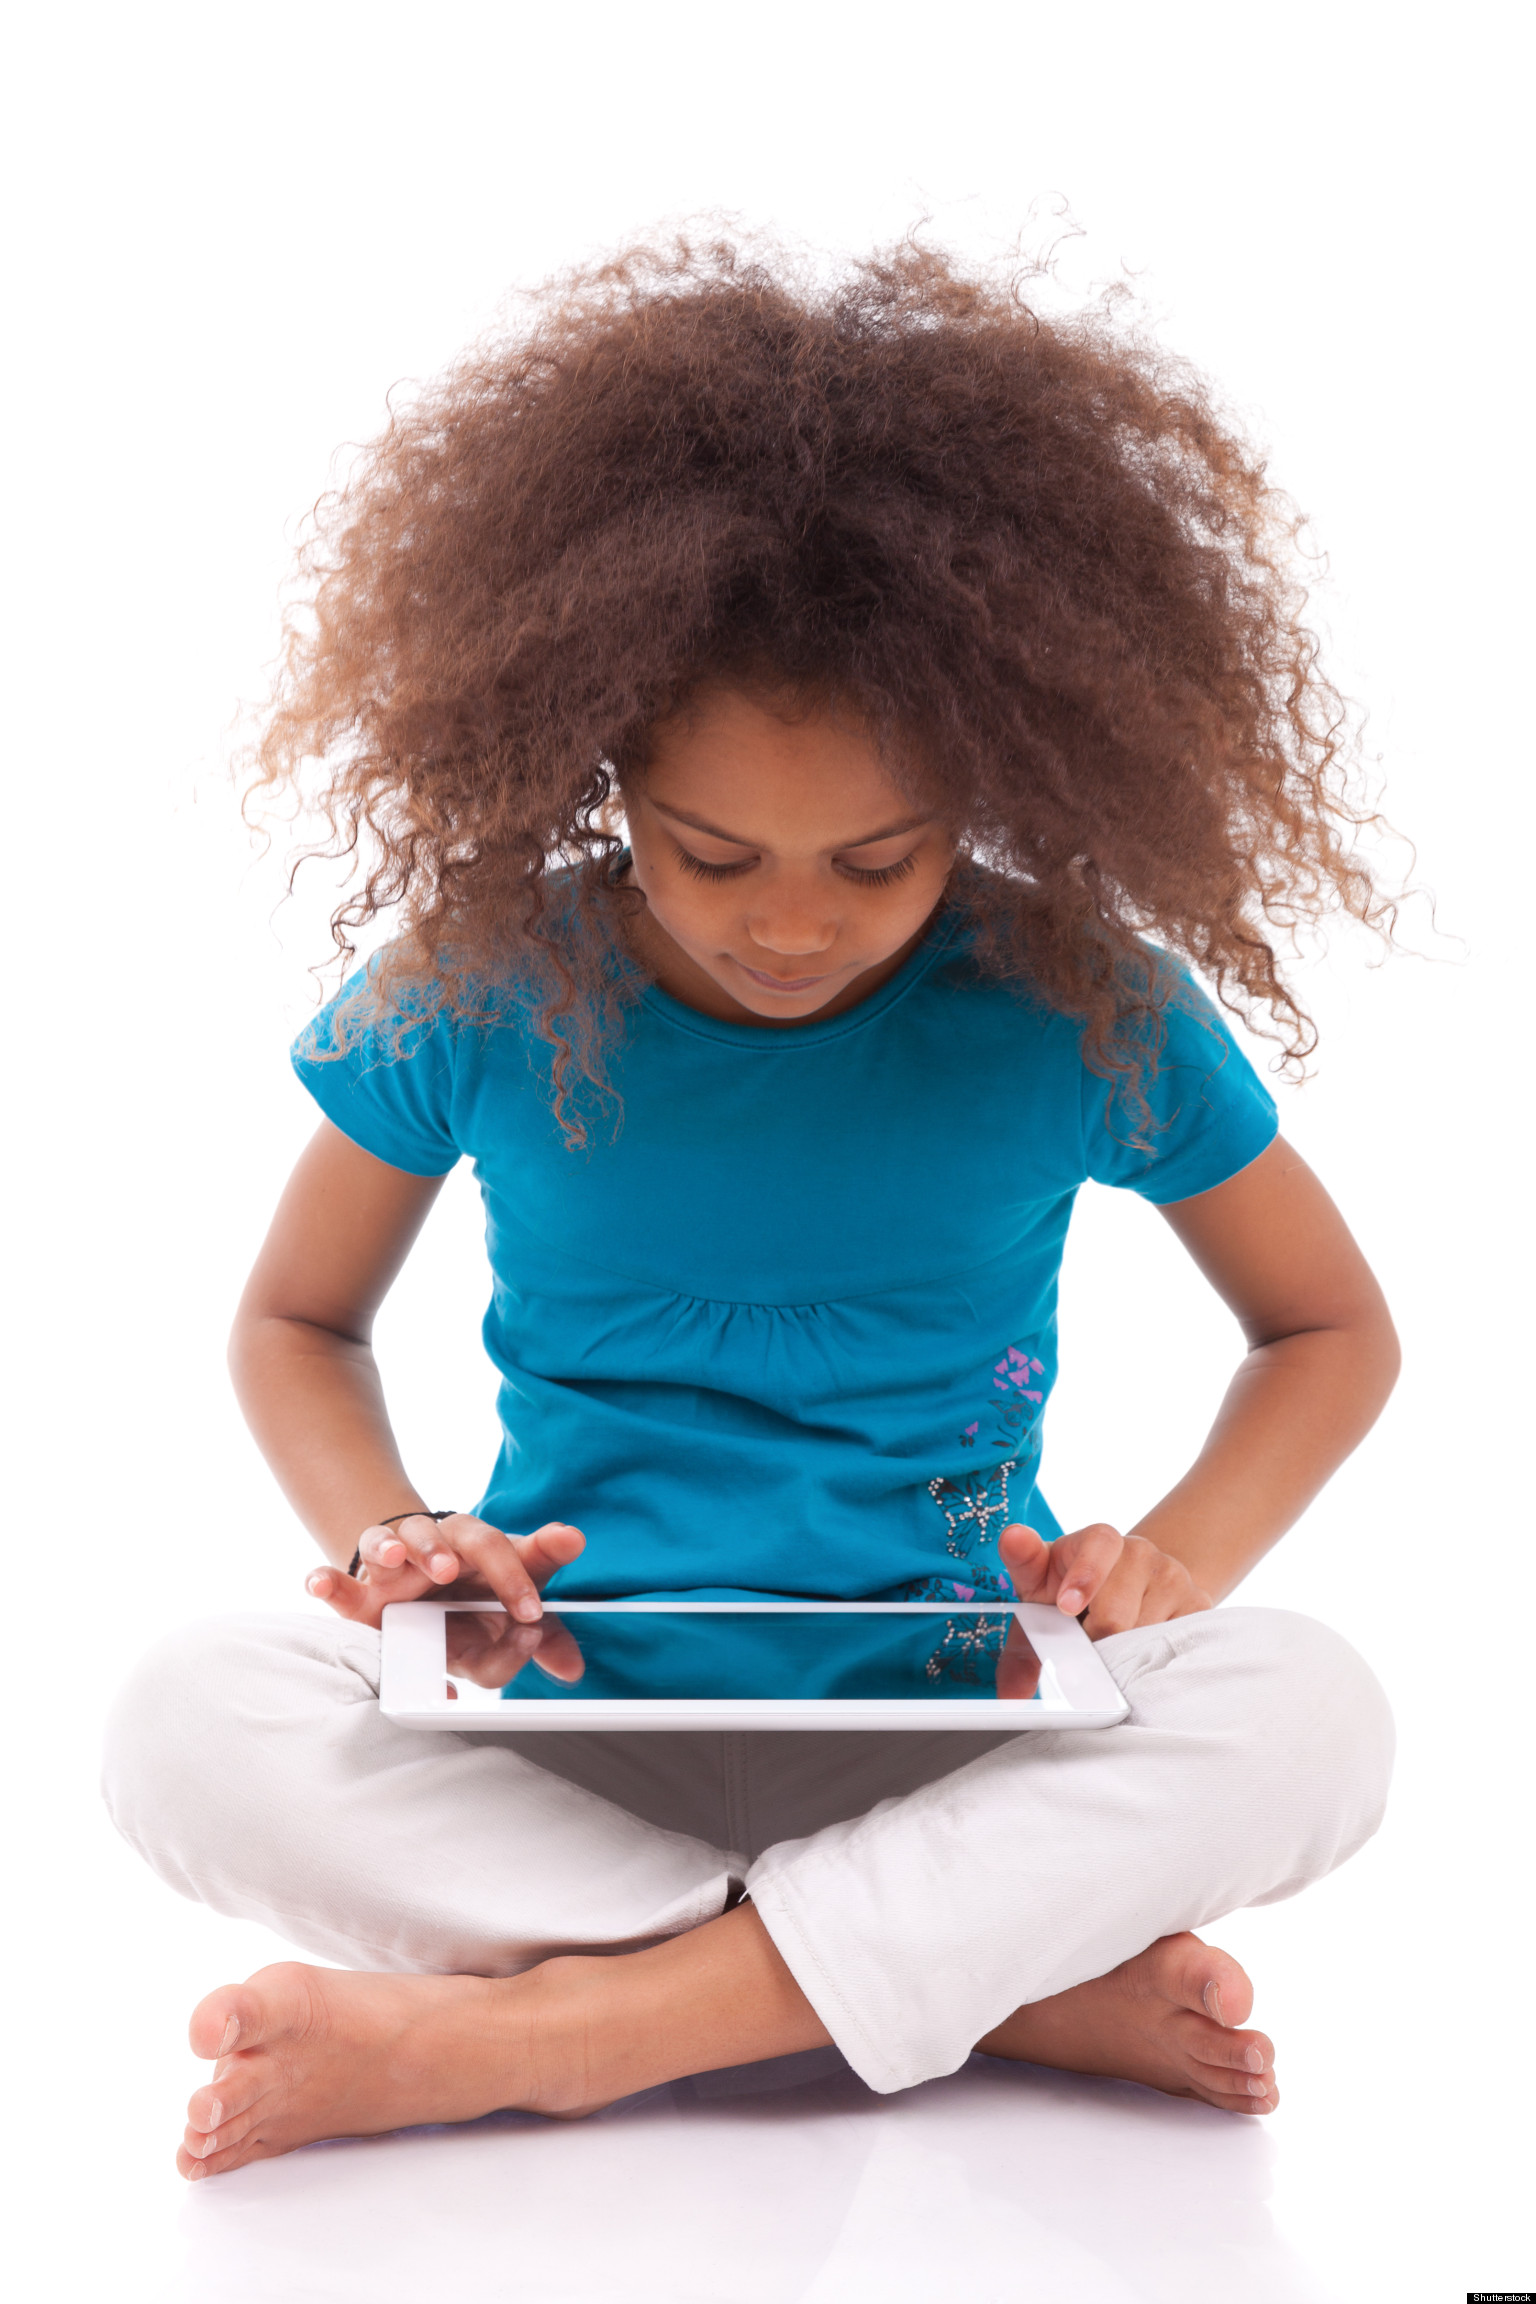 the impact of technology on family time essay